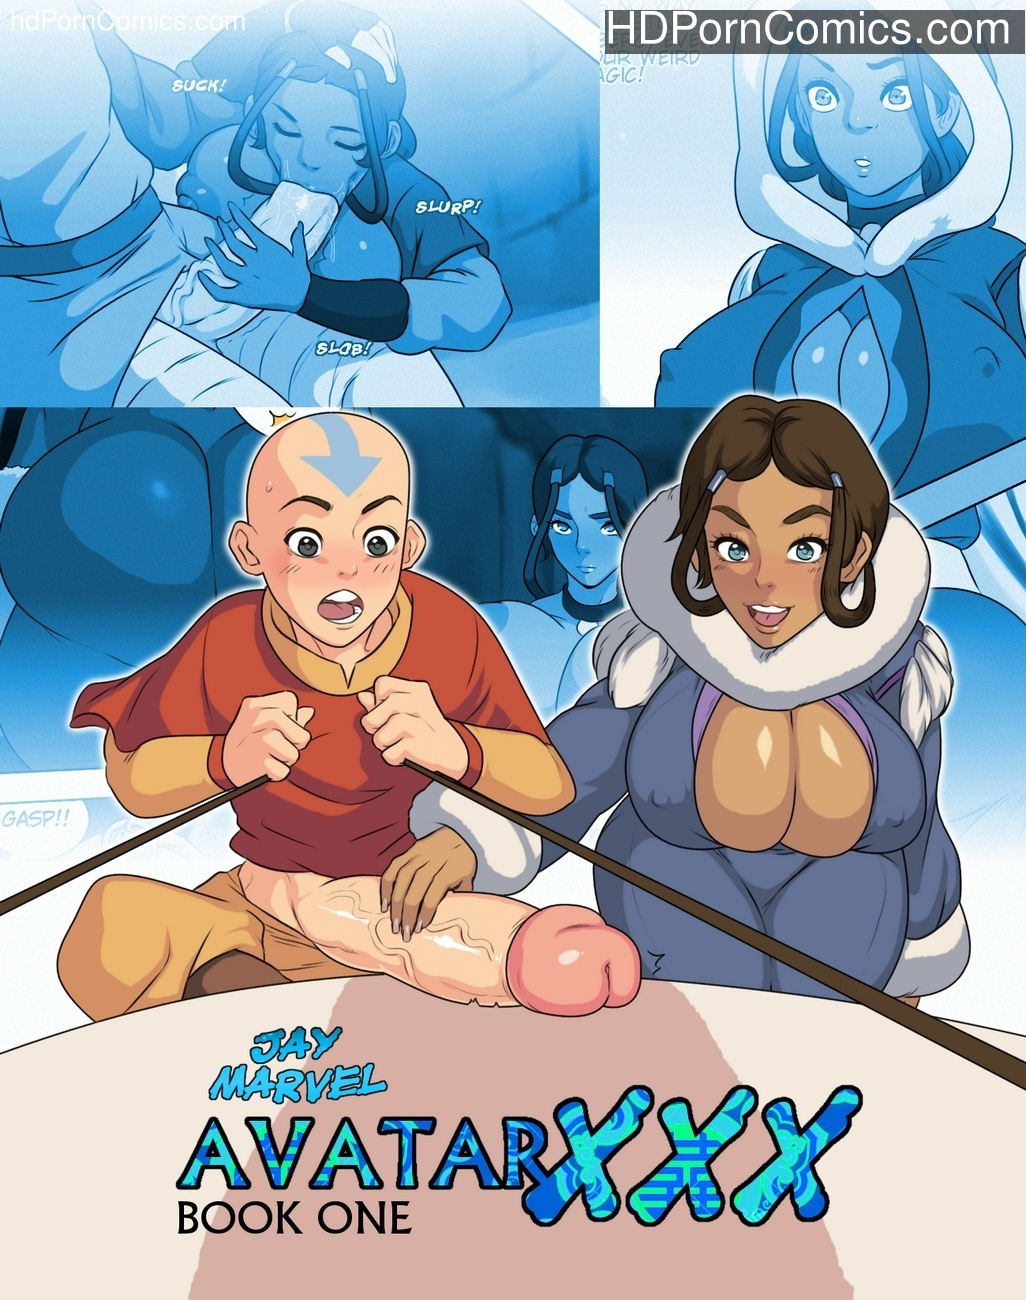 Avatar XXX - Book One 1 free avatar Porn Comics